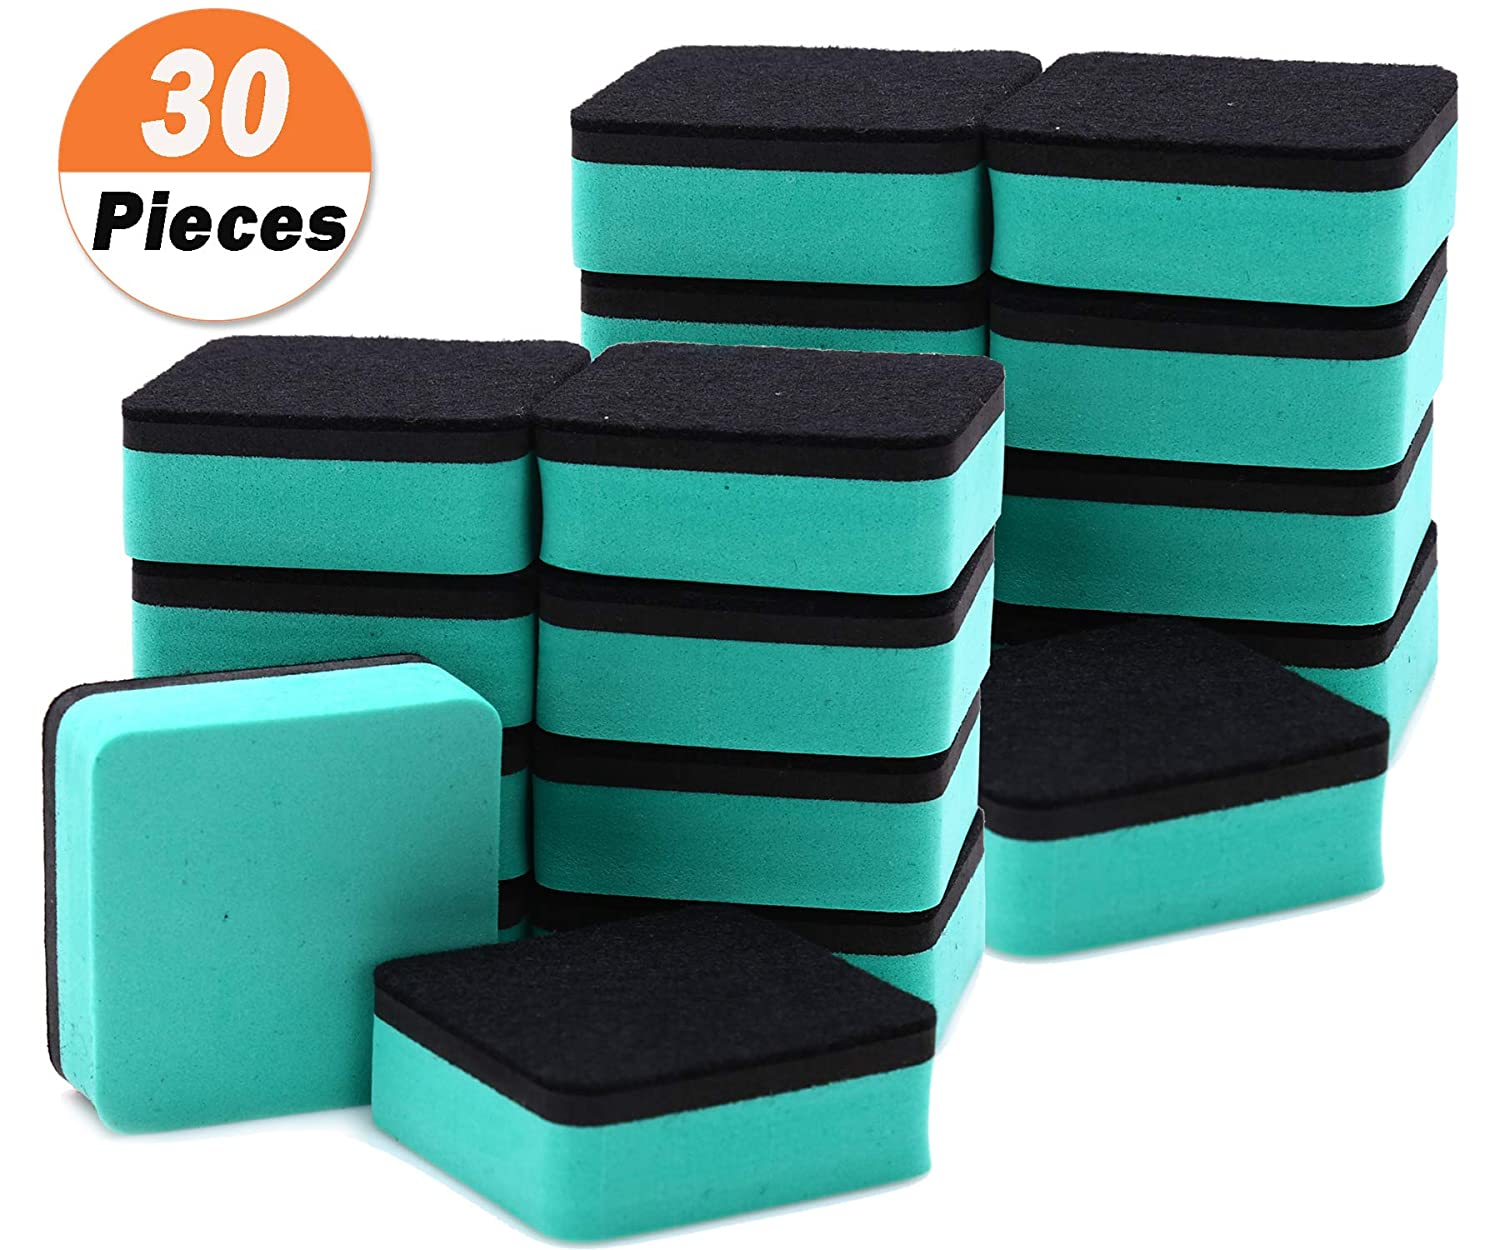 """30 Pack Magnetic Whiteboard Eraser for School Classroom, Office, Home - Buytra Dry Erase Erasers Cleaner for Dry-erase White Board, 1.97 x 1.97"""", Square Shape (Green)"""